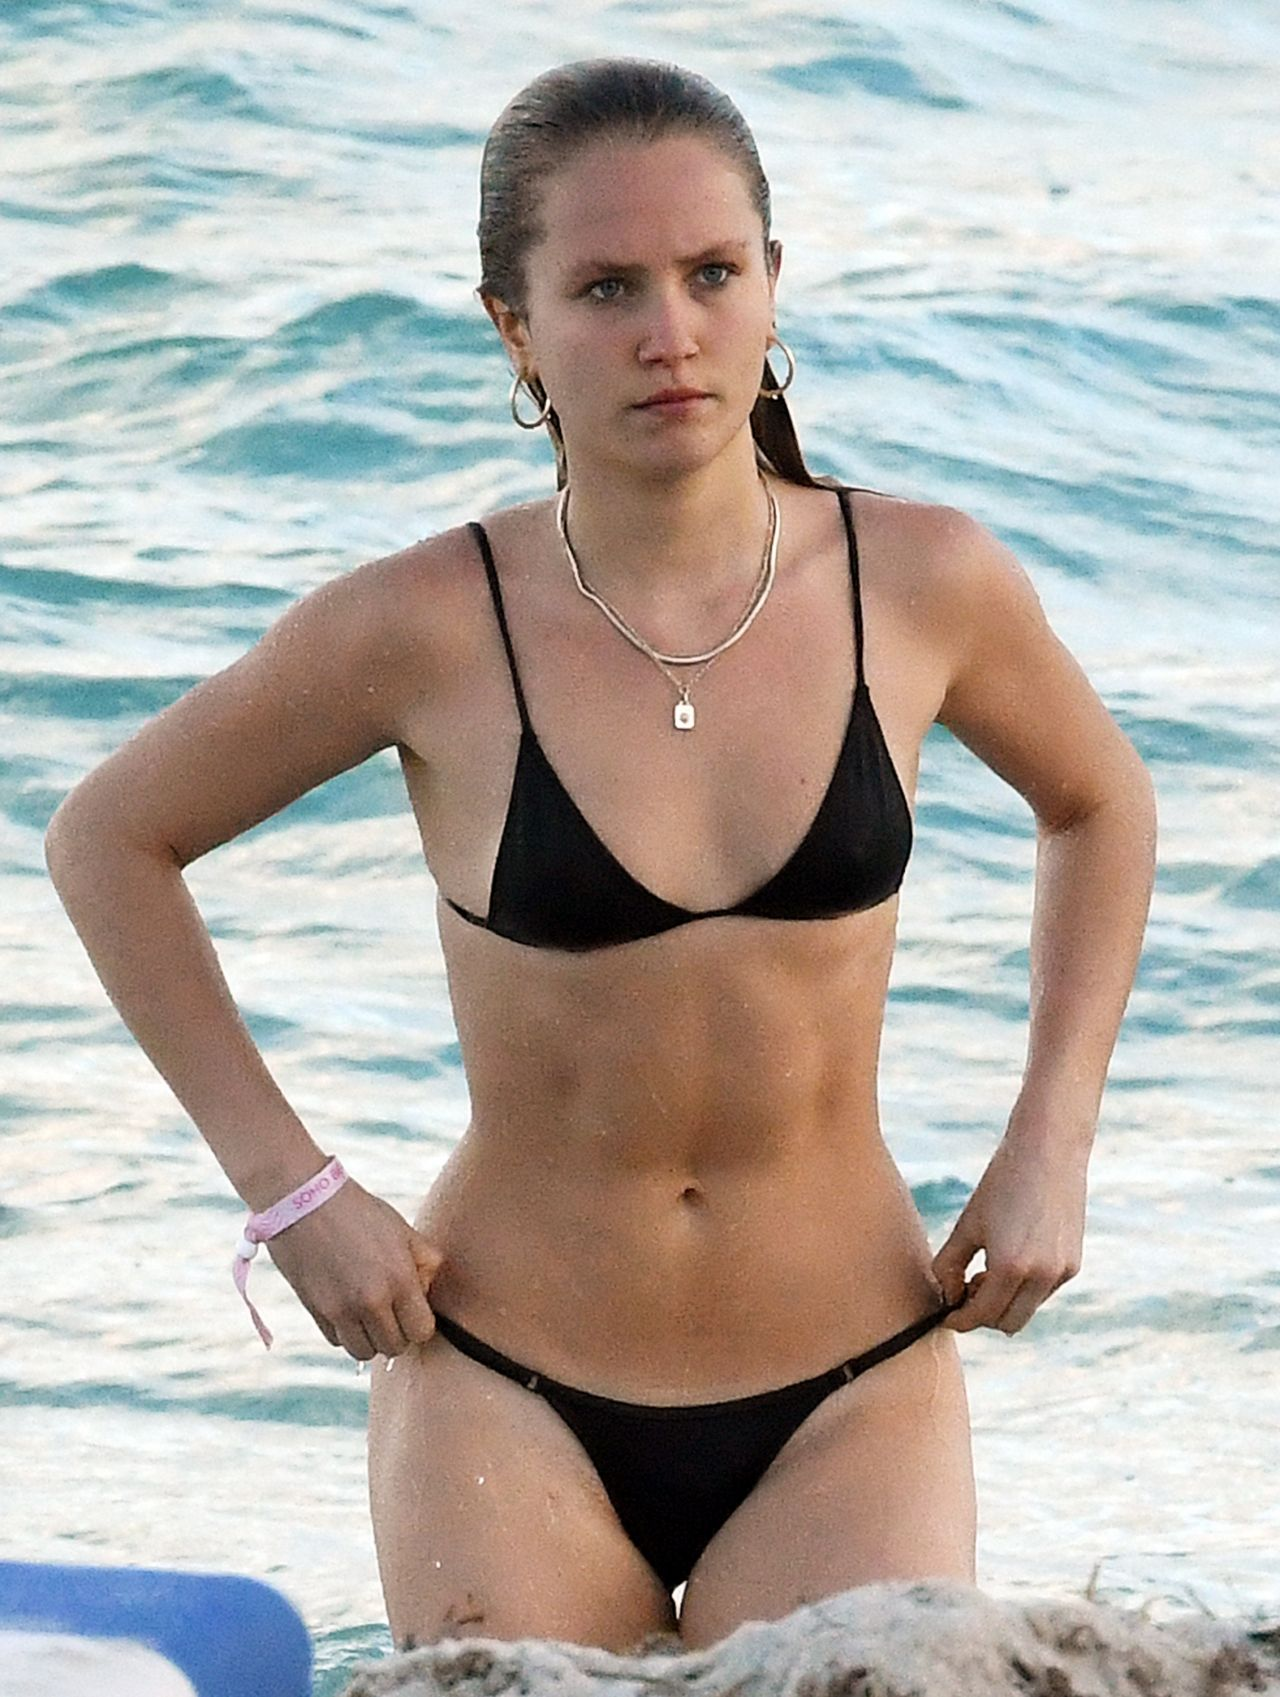 b68ff6f730 Sailor Brinkley Cook in Bikini 12/07/2018